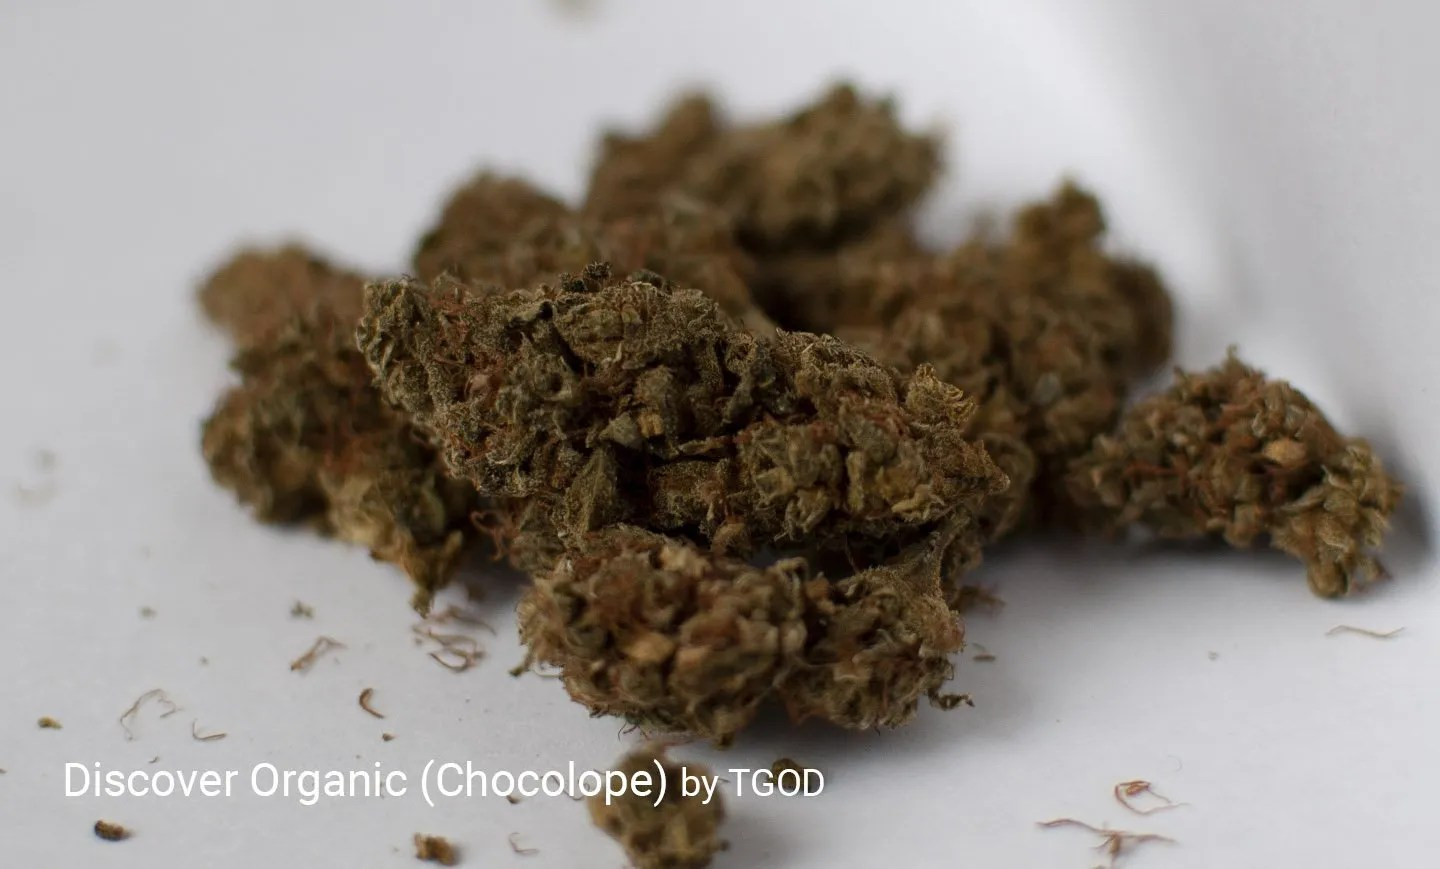 Reviewing Discover Organic aka Chocolope